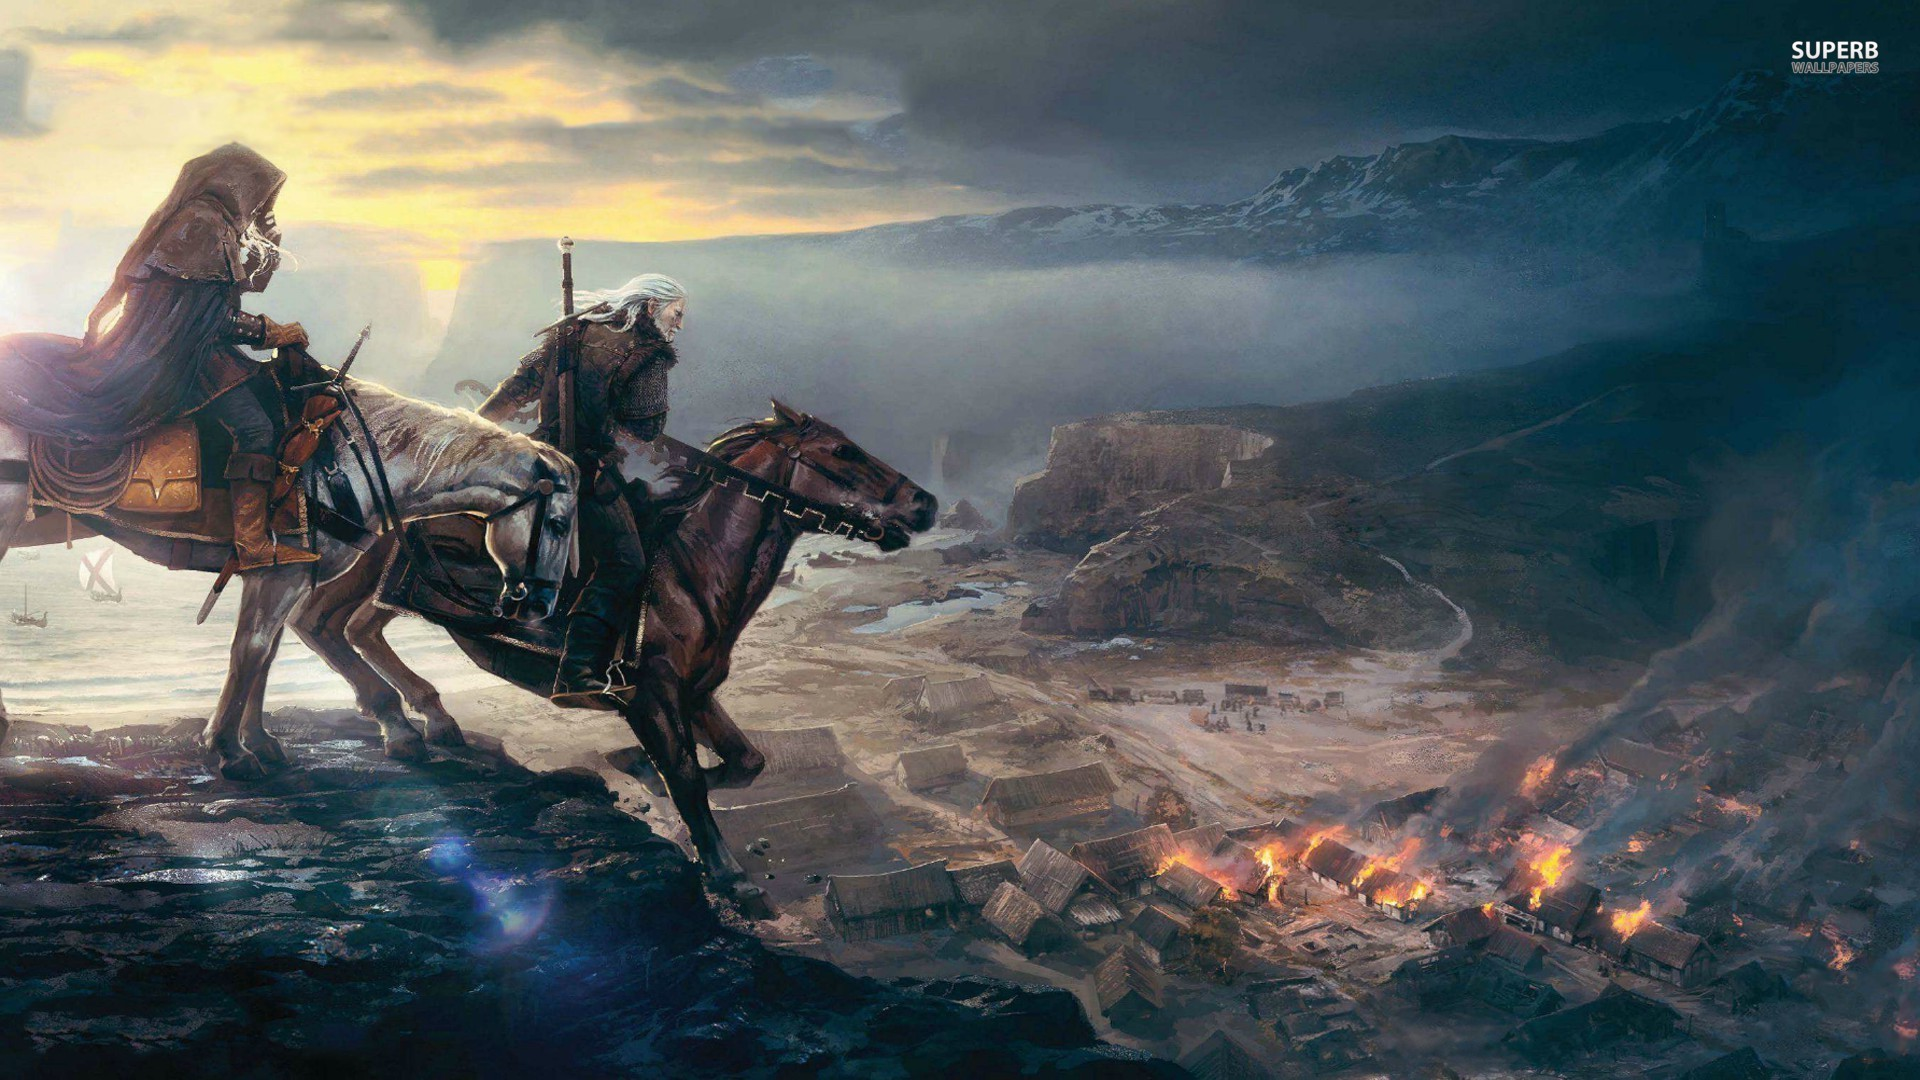 Fonds dcran The Witcher 3 tous les wallpapers The Witcher 3 1920x1080